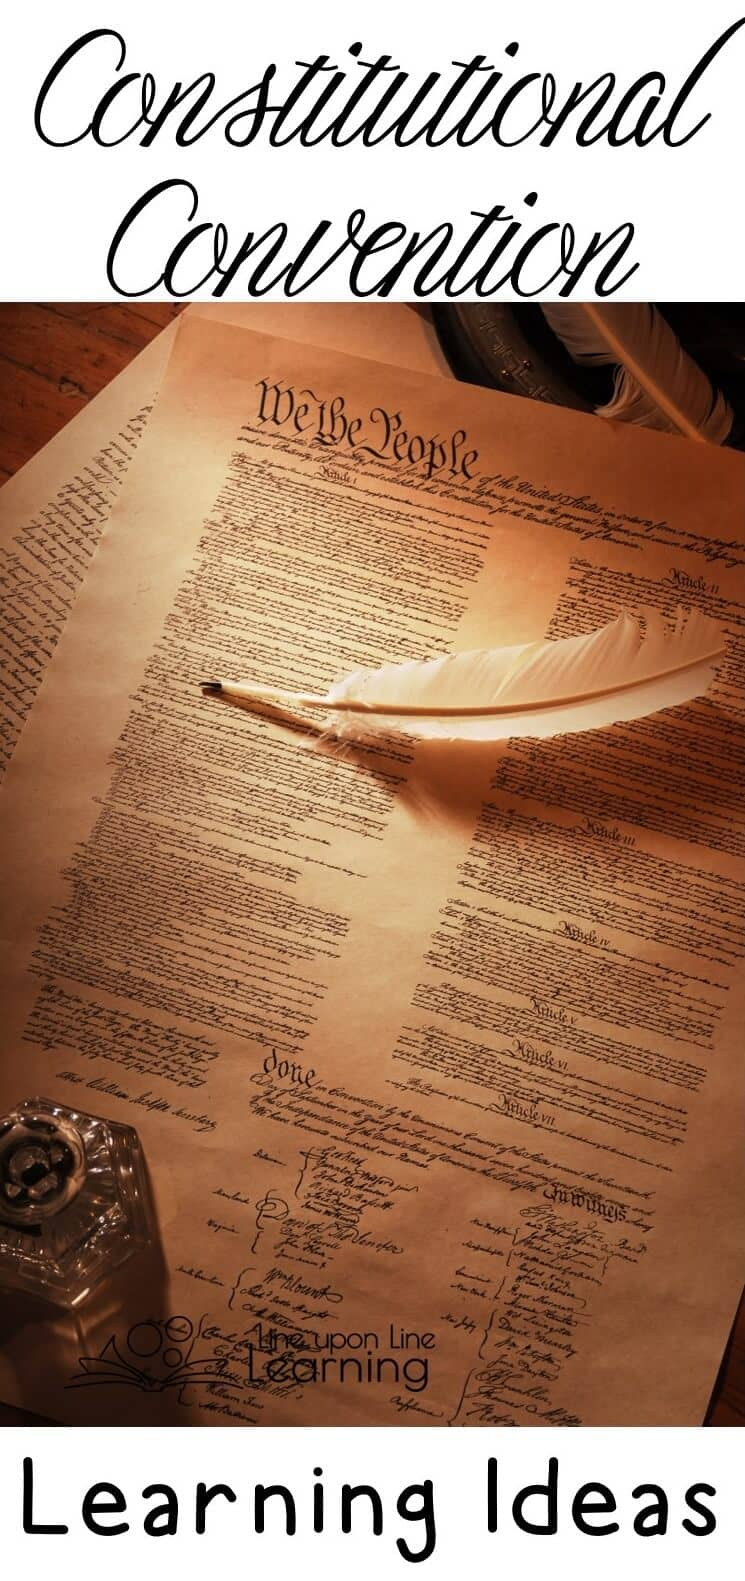 Creating a new nation, the U.S.A., was not easy at the Constitutional Convention. Compromises had to be made.